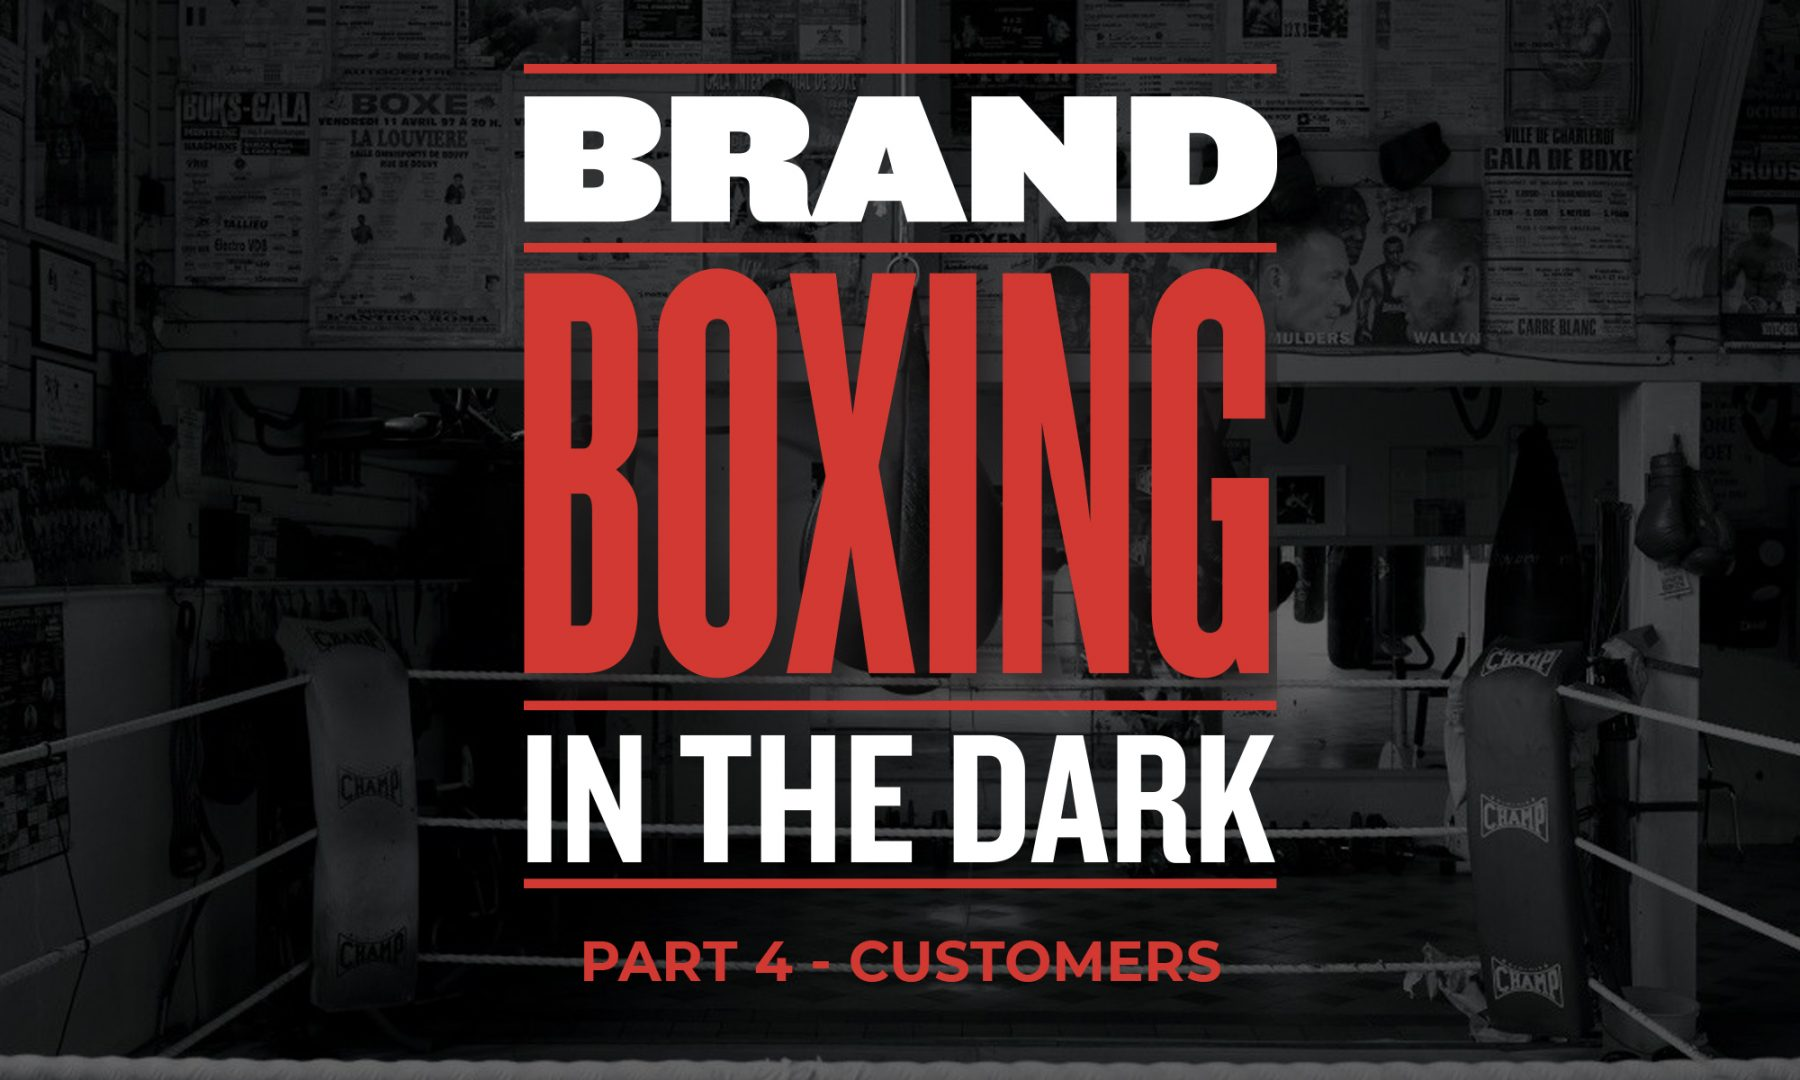 Rebrand Boxing in the dark - Customers